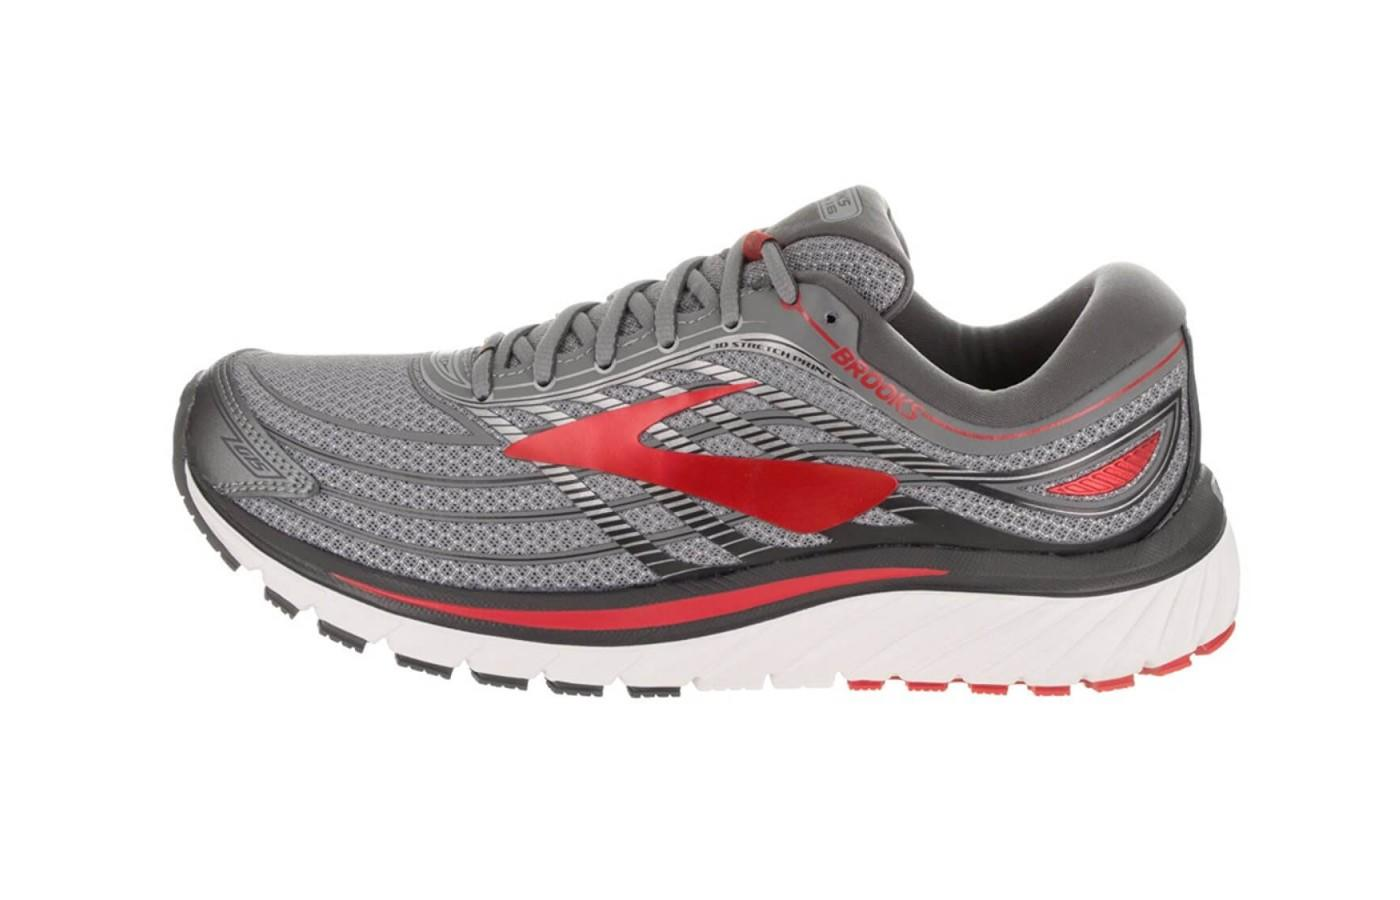 the breathable mesh upper and overlays allow for excellent breathability